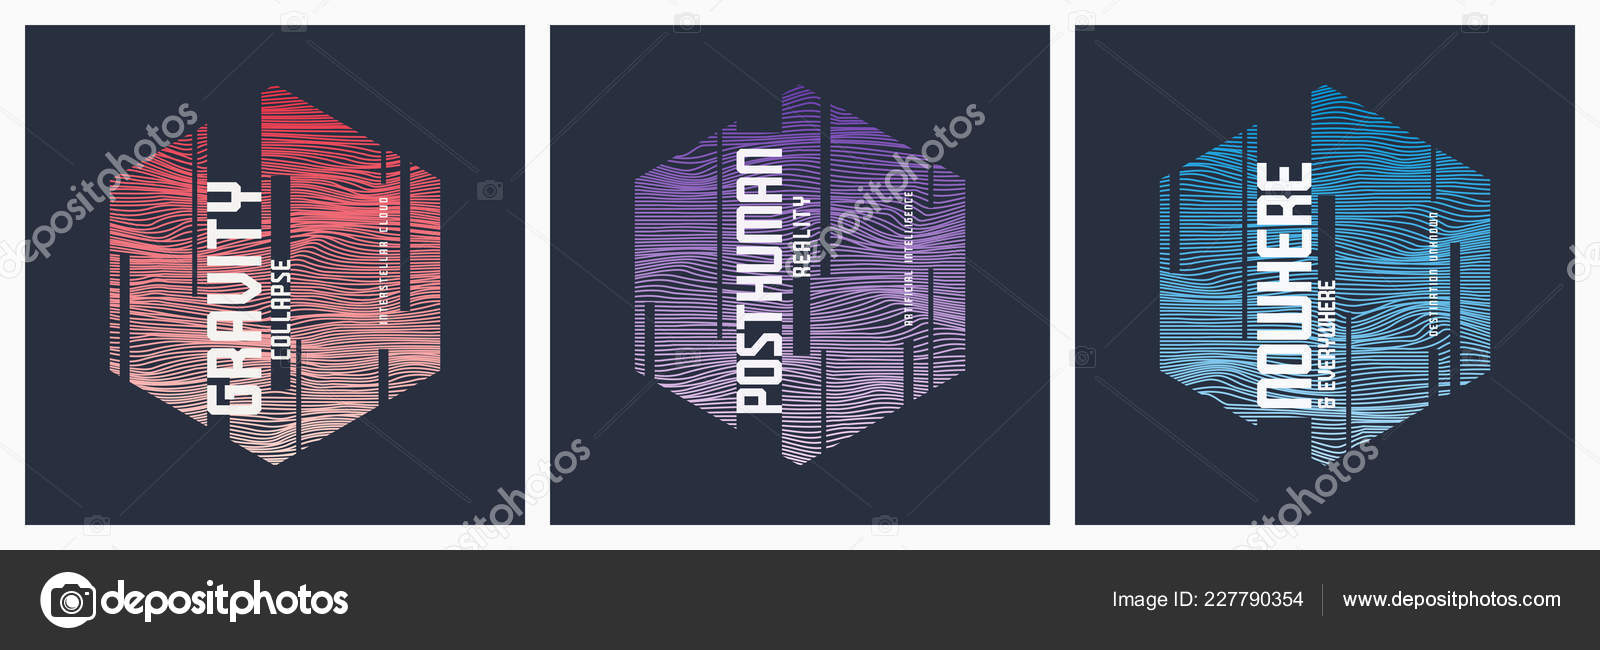 Abstract Sci Fi Geometric Vector T Shirt And Apparel Designs